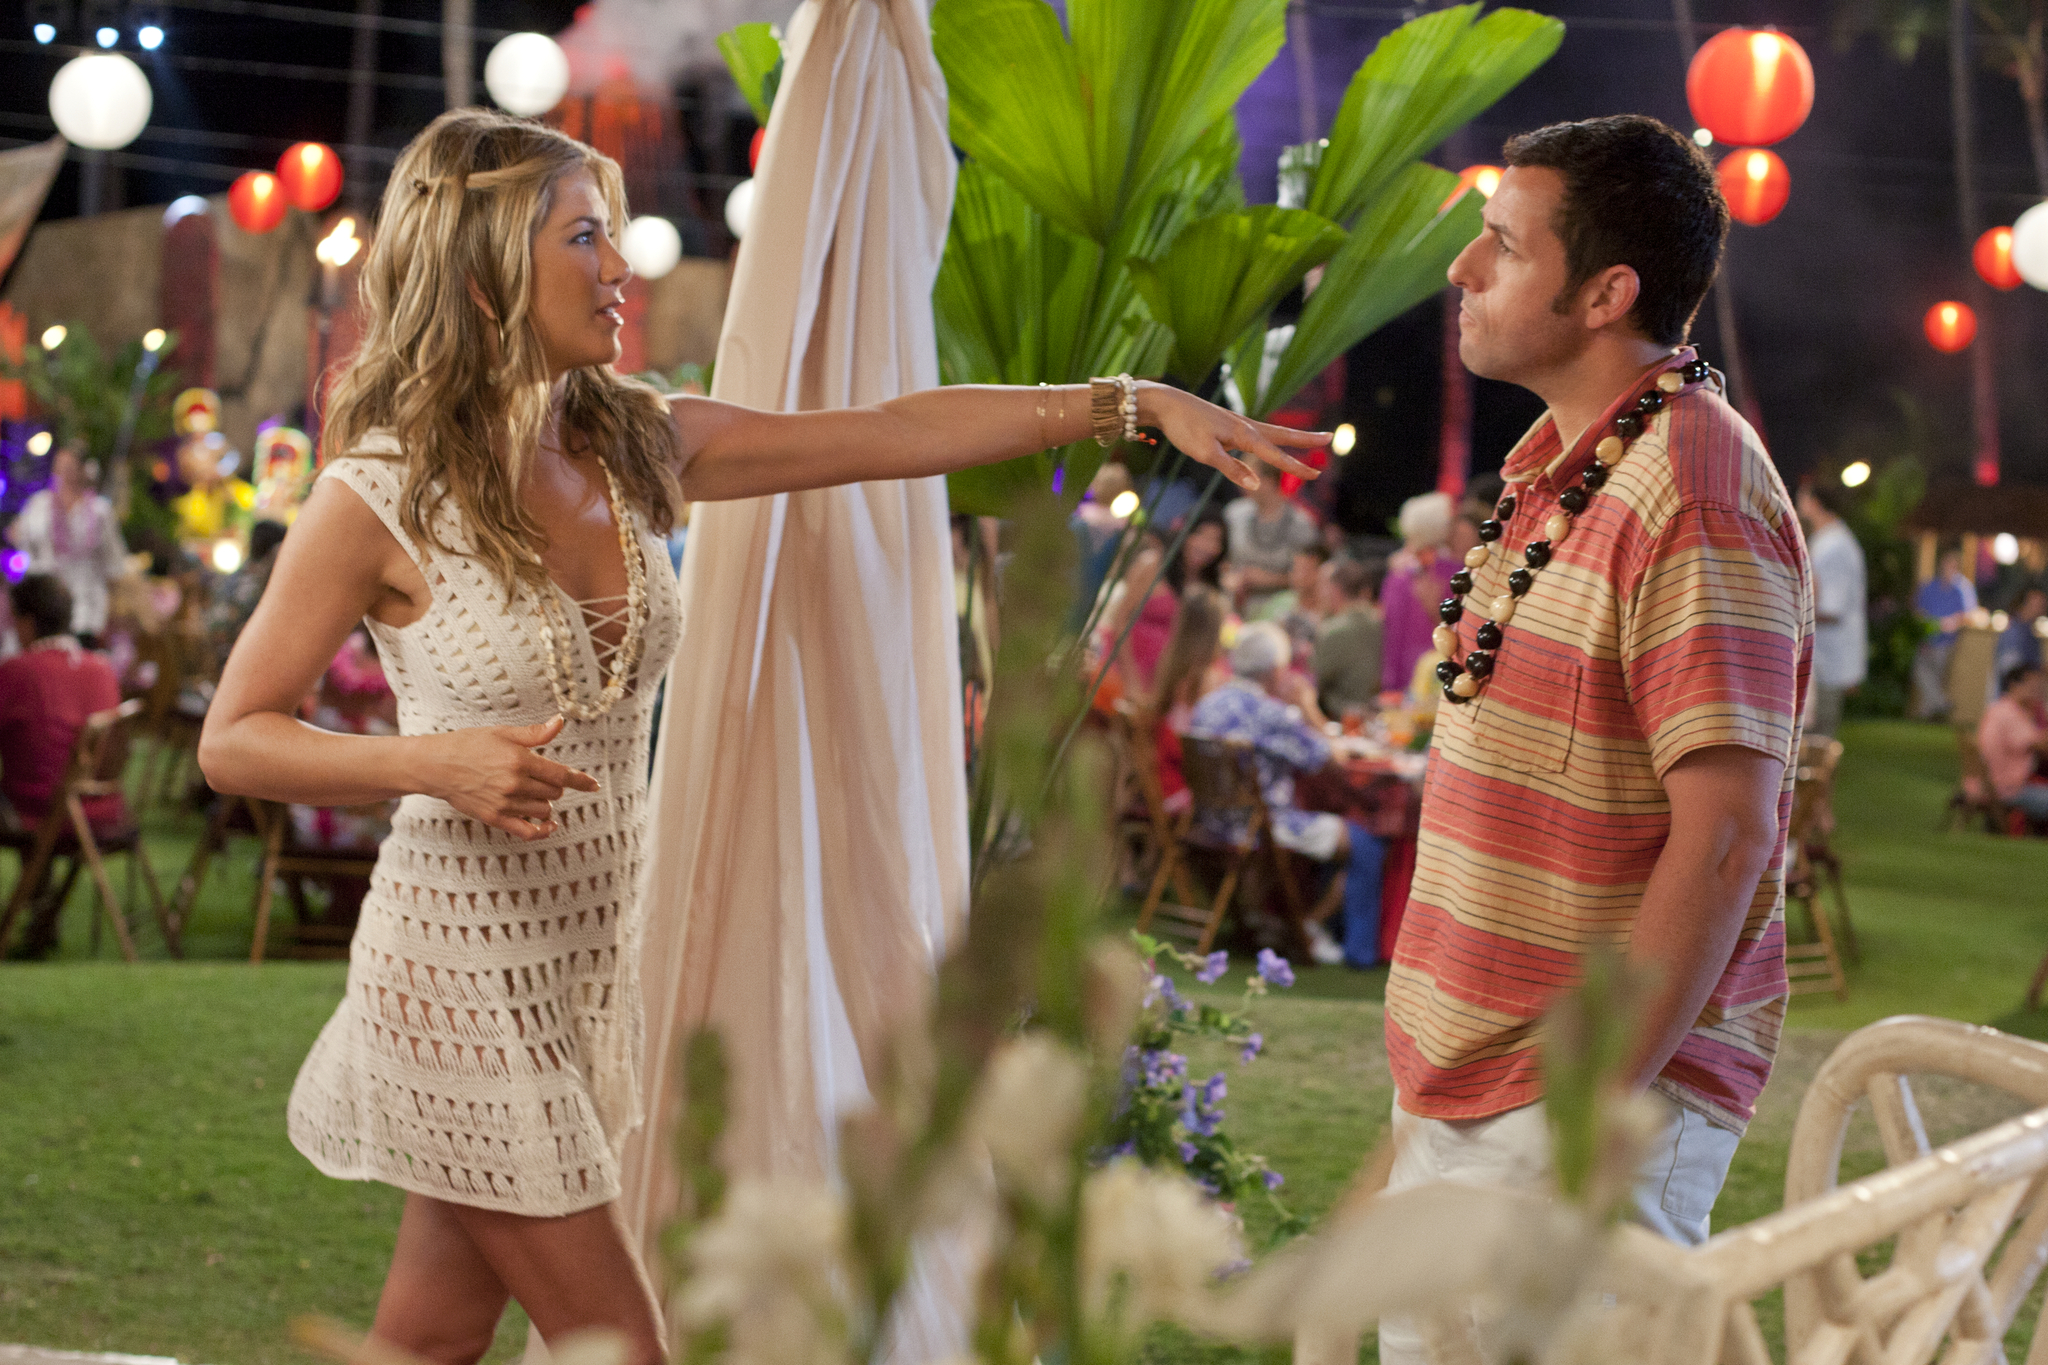 Jennifer Aniston and Adam Sandler in Just Go with It (2011)